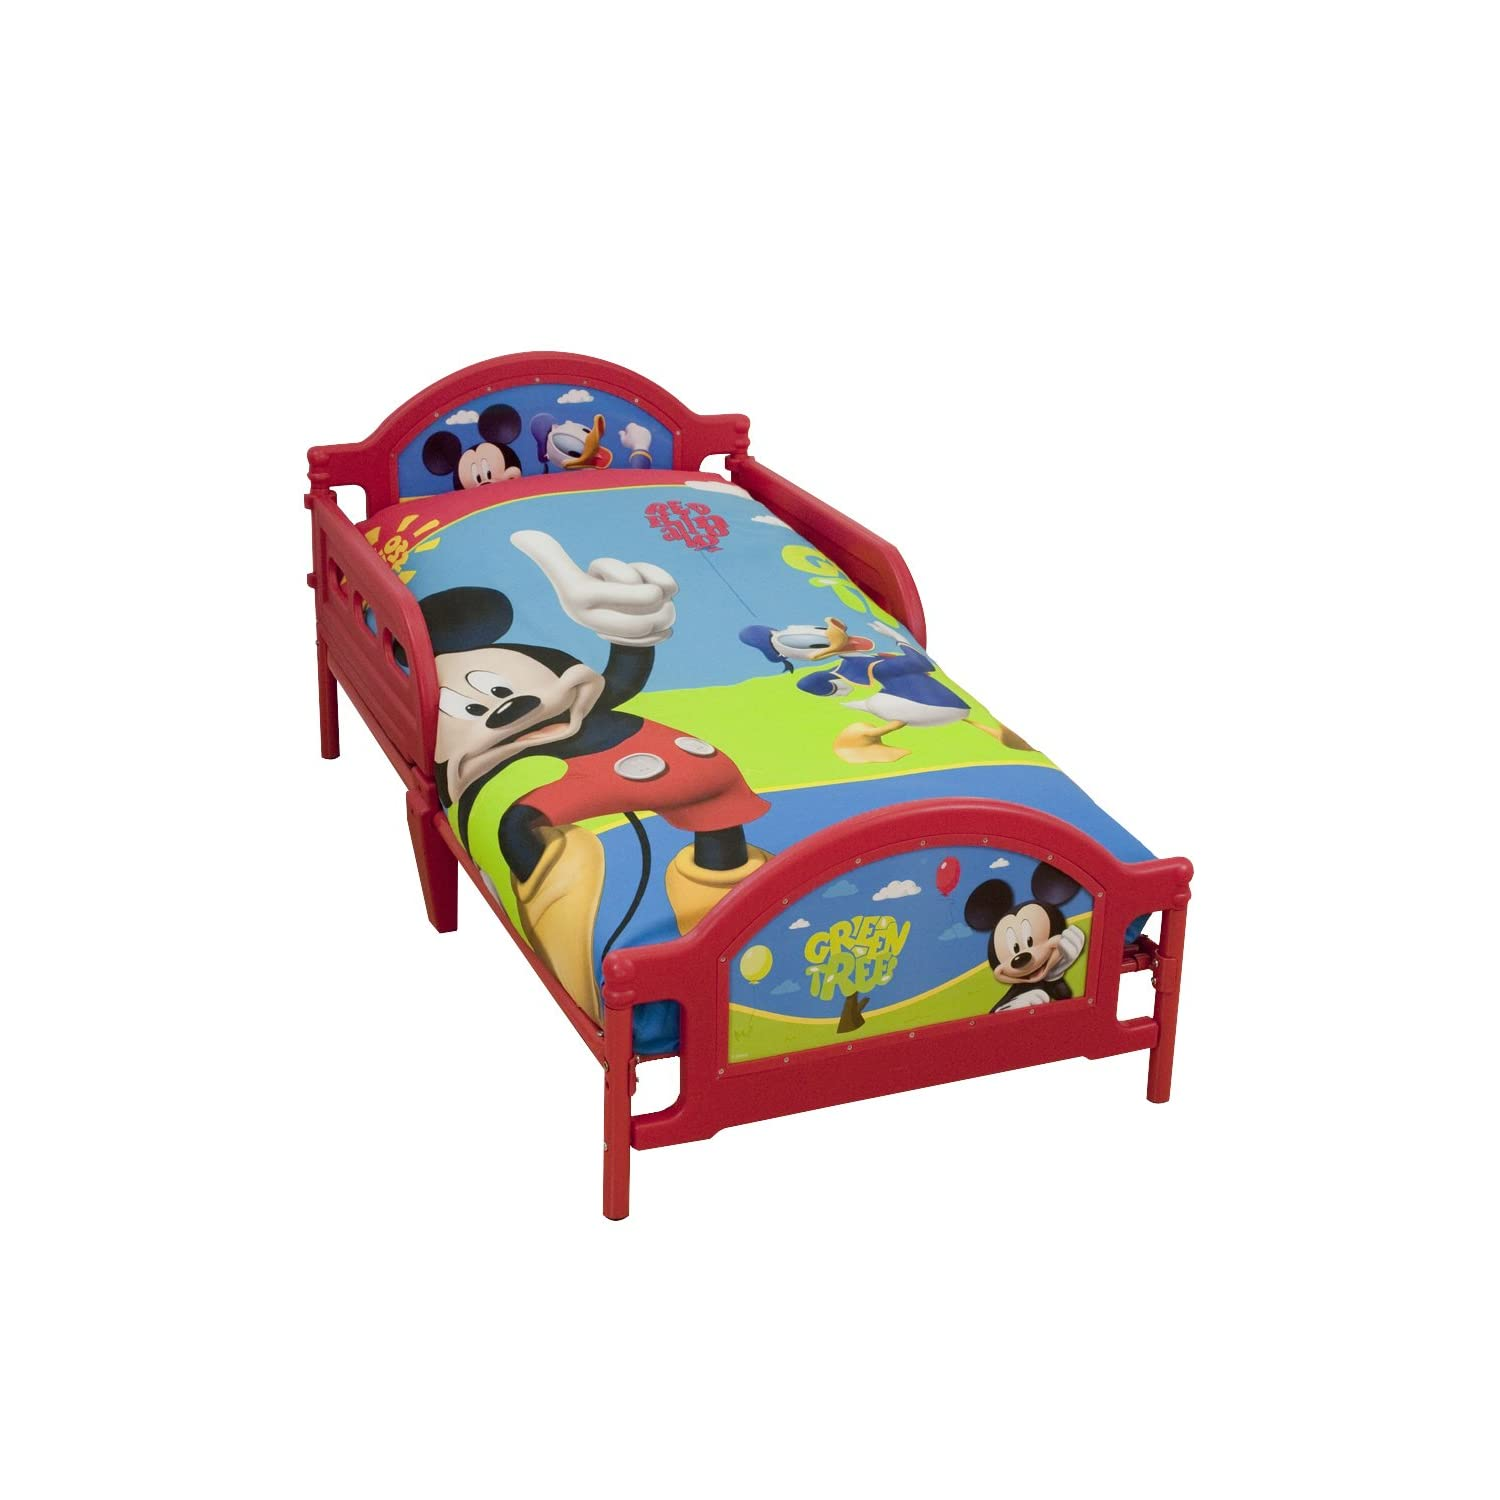 mickey mouse clubhouse bean bag chair iron throne backboard furniture totally kids bedrooms